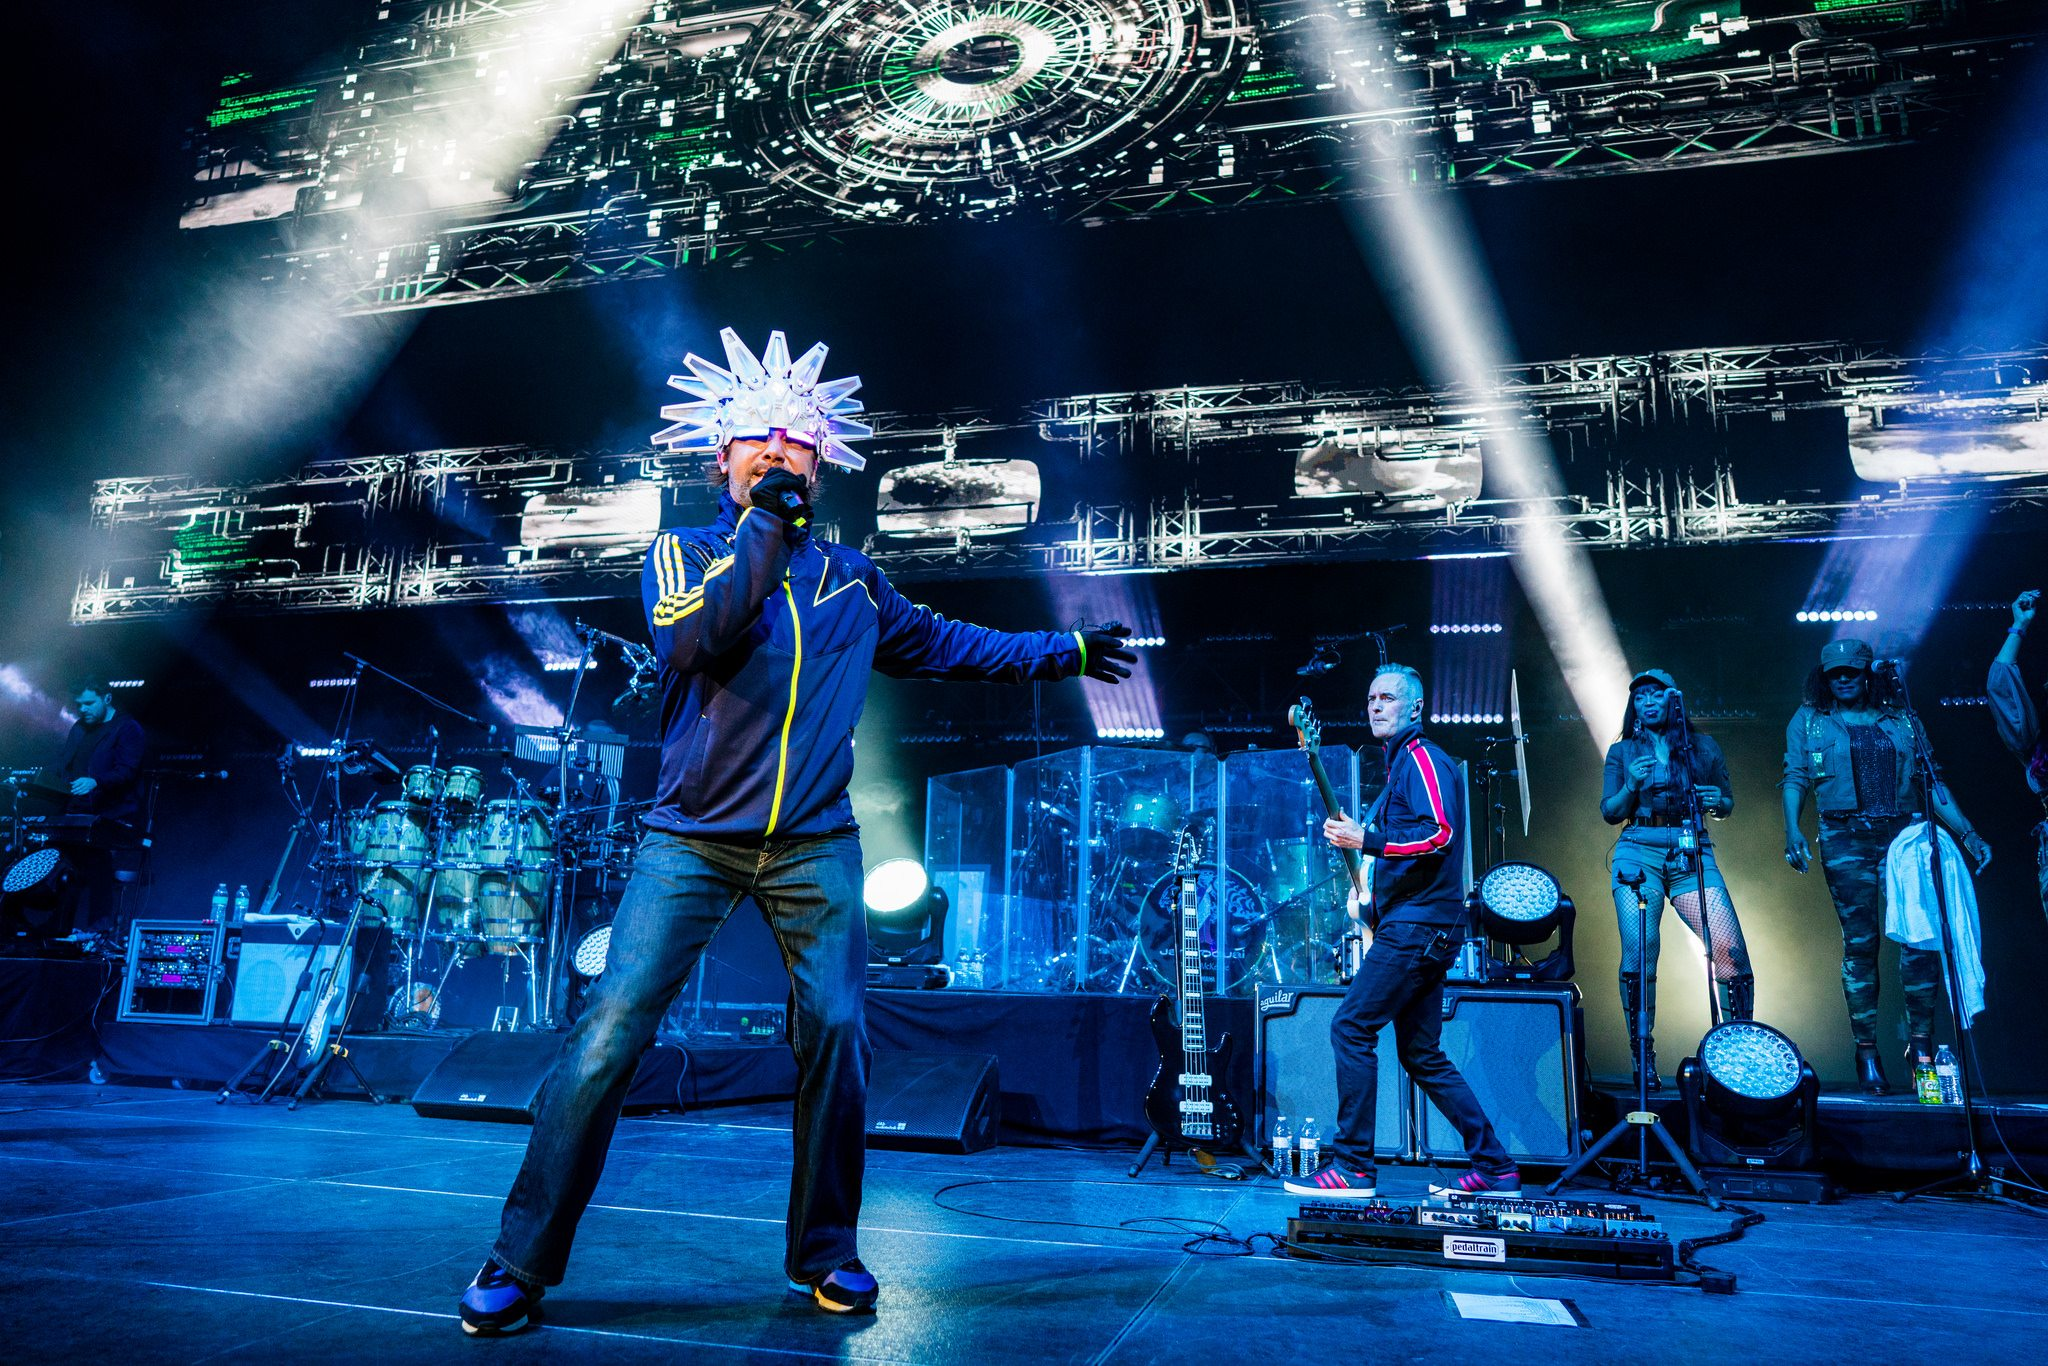 Manifest Destiny: Jamiroquai's Triumphant Return After 13